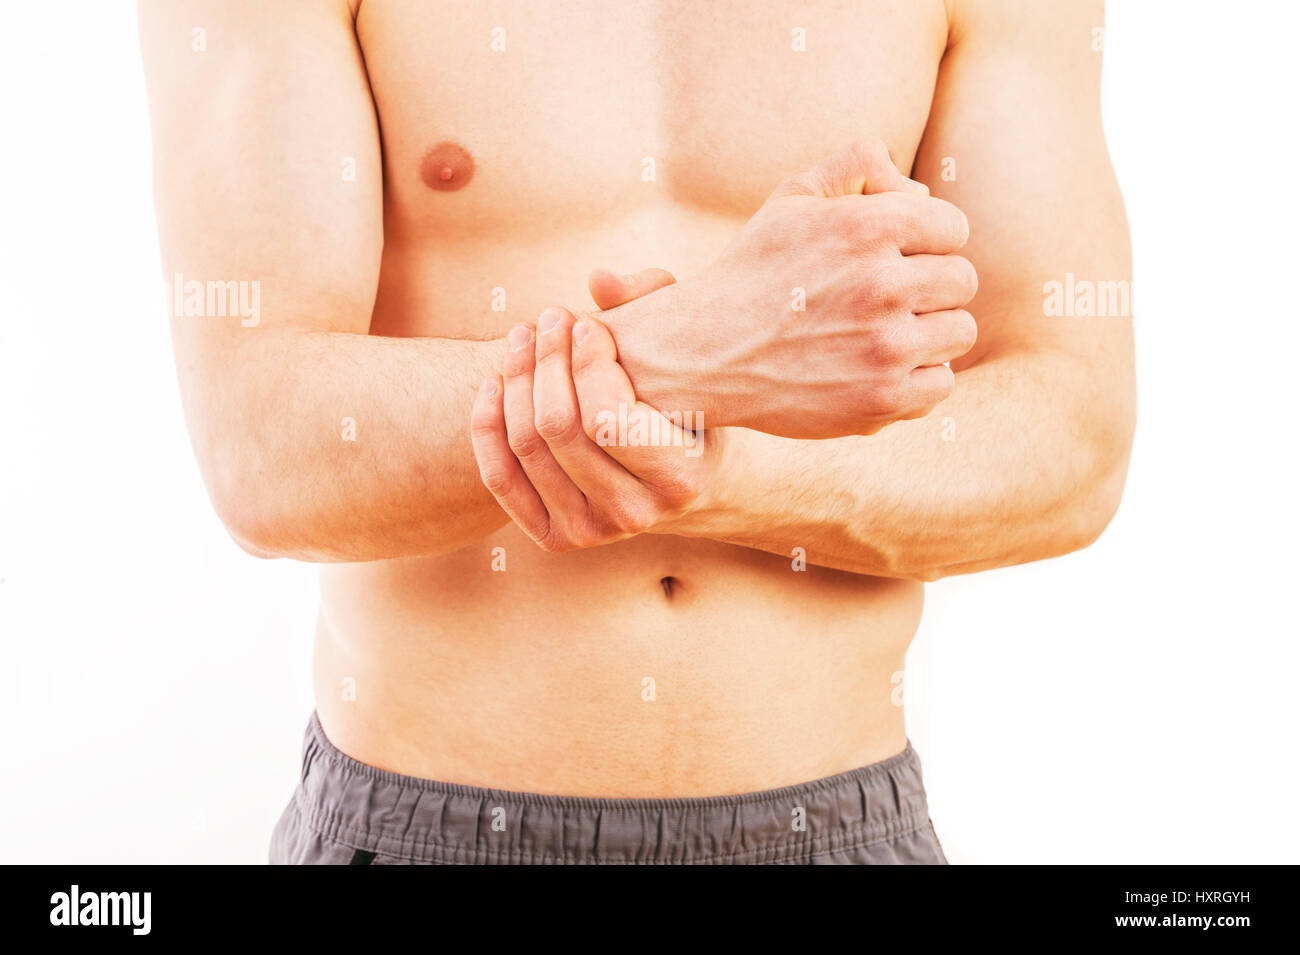 Man with wrist pain over white background - Stock Image